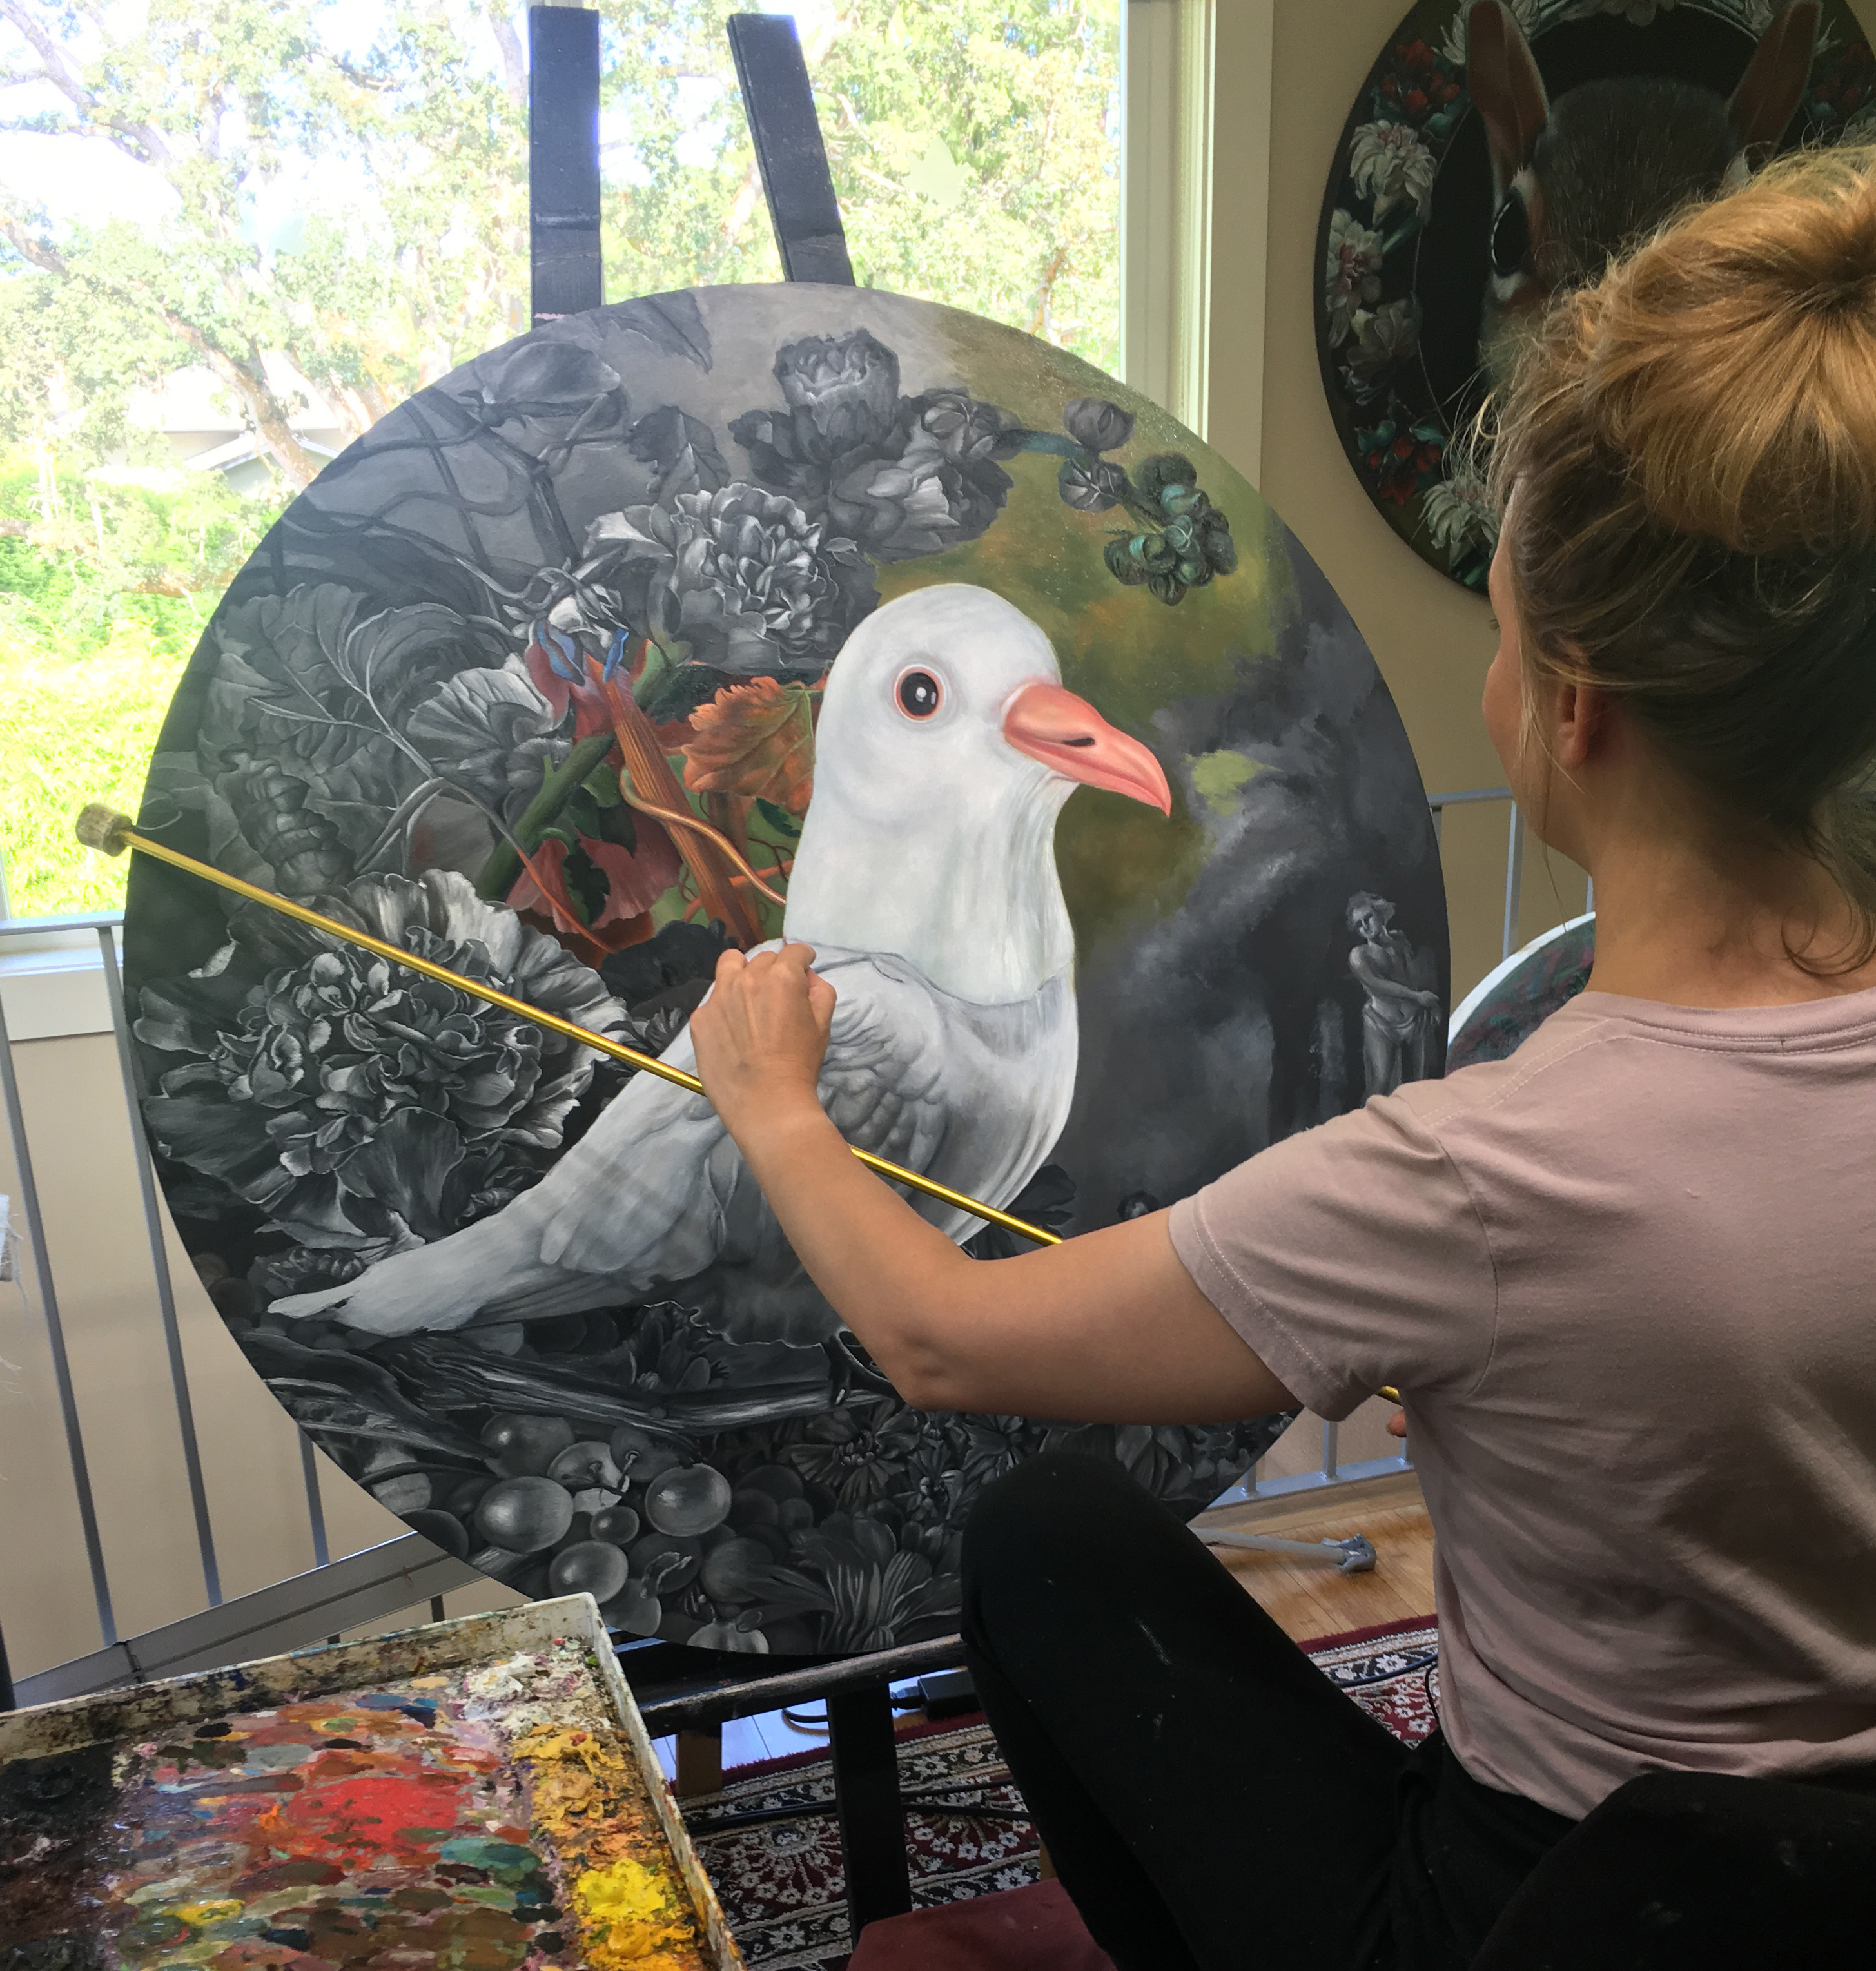 "Carollyne Yardley working on Holy Spirit Wears a Dove Mask II (2018) Commission. Oil on panel, 36"" diameter. Photos and high resolution details. #contemporaryart #dove #carollyneyardley #oilpainting"